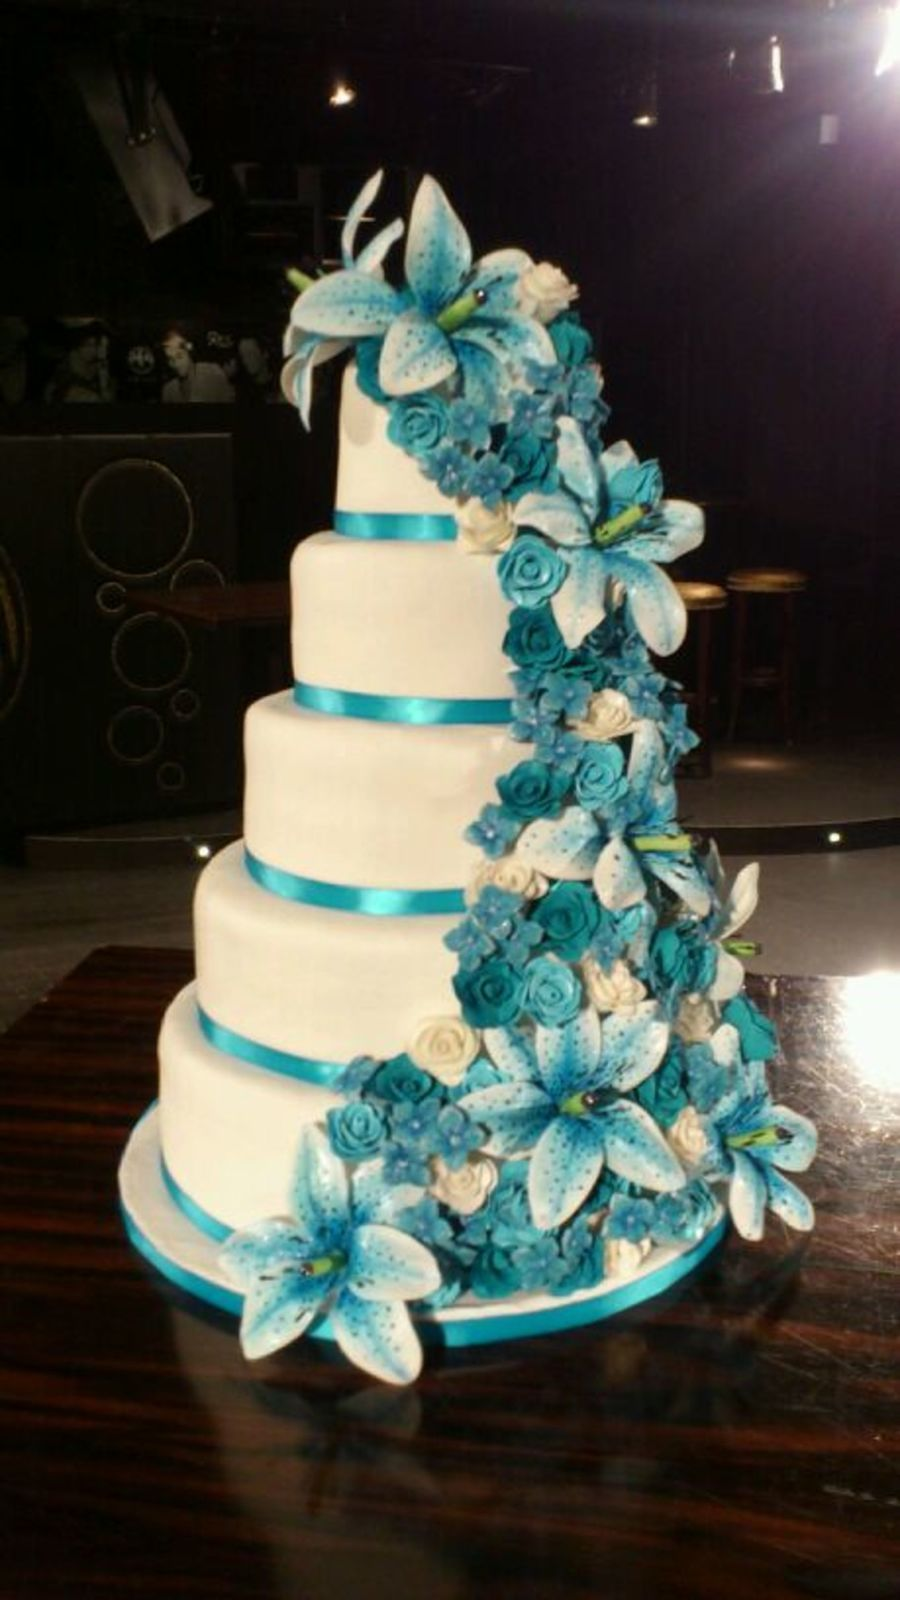 White wedding cake with lots of blue flowers cakes pinterest white wedding cake with lots of blue flowers izmirmasajfo